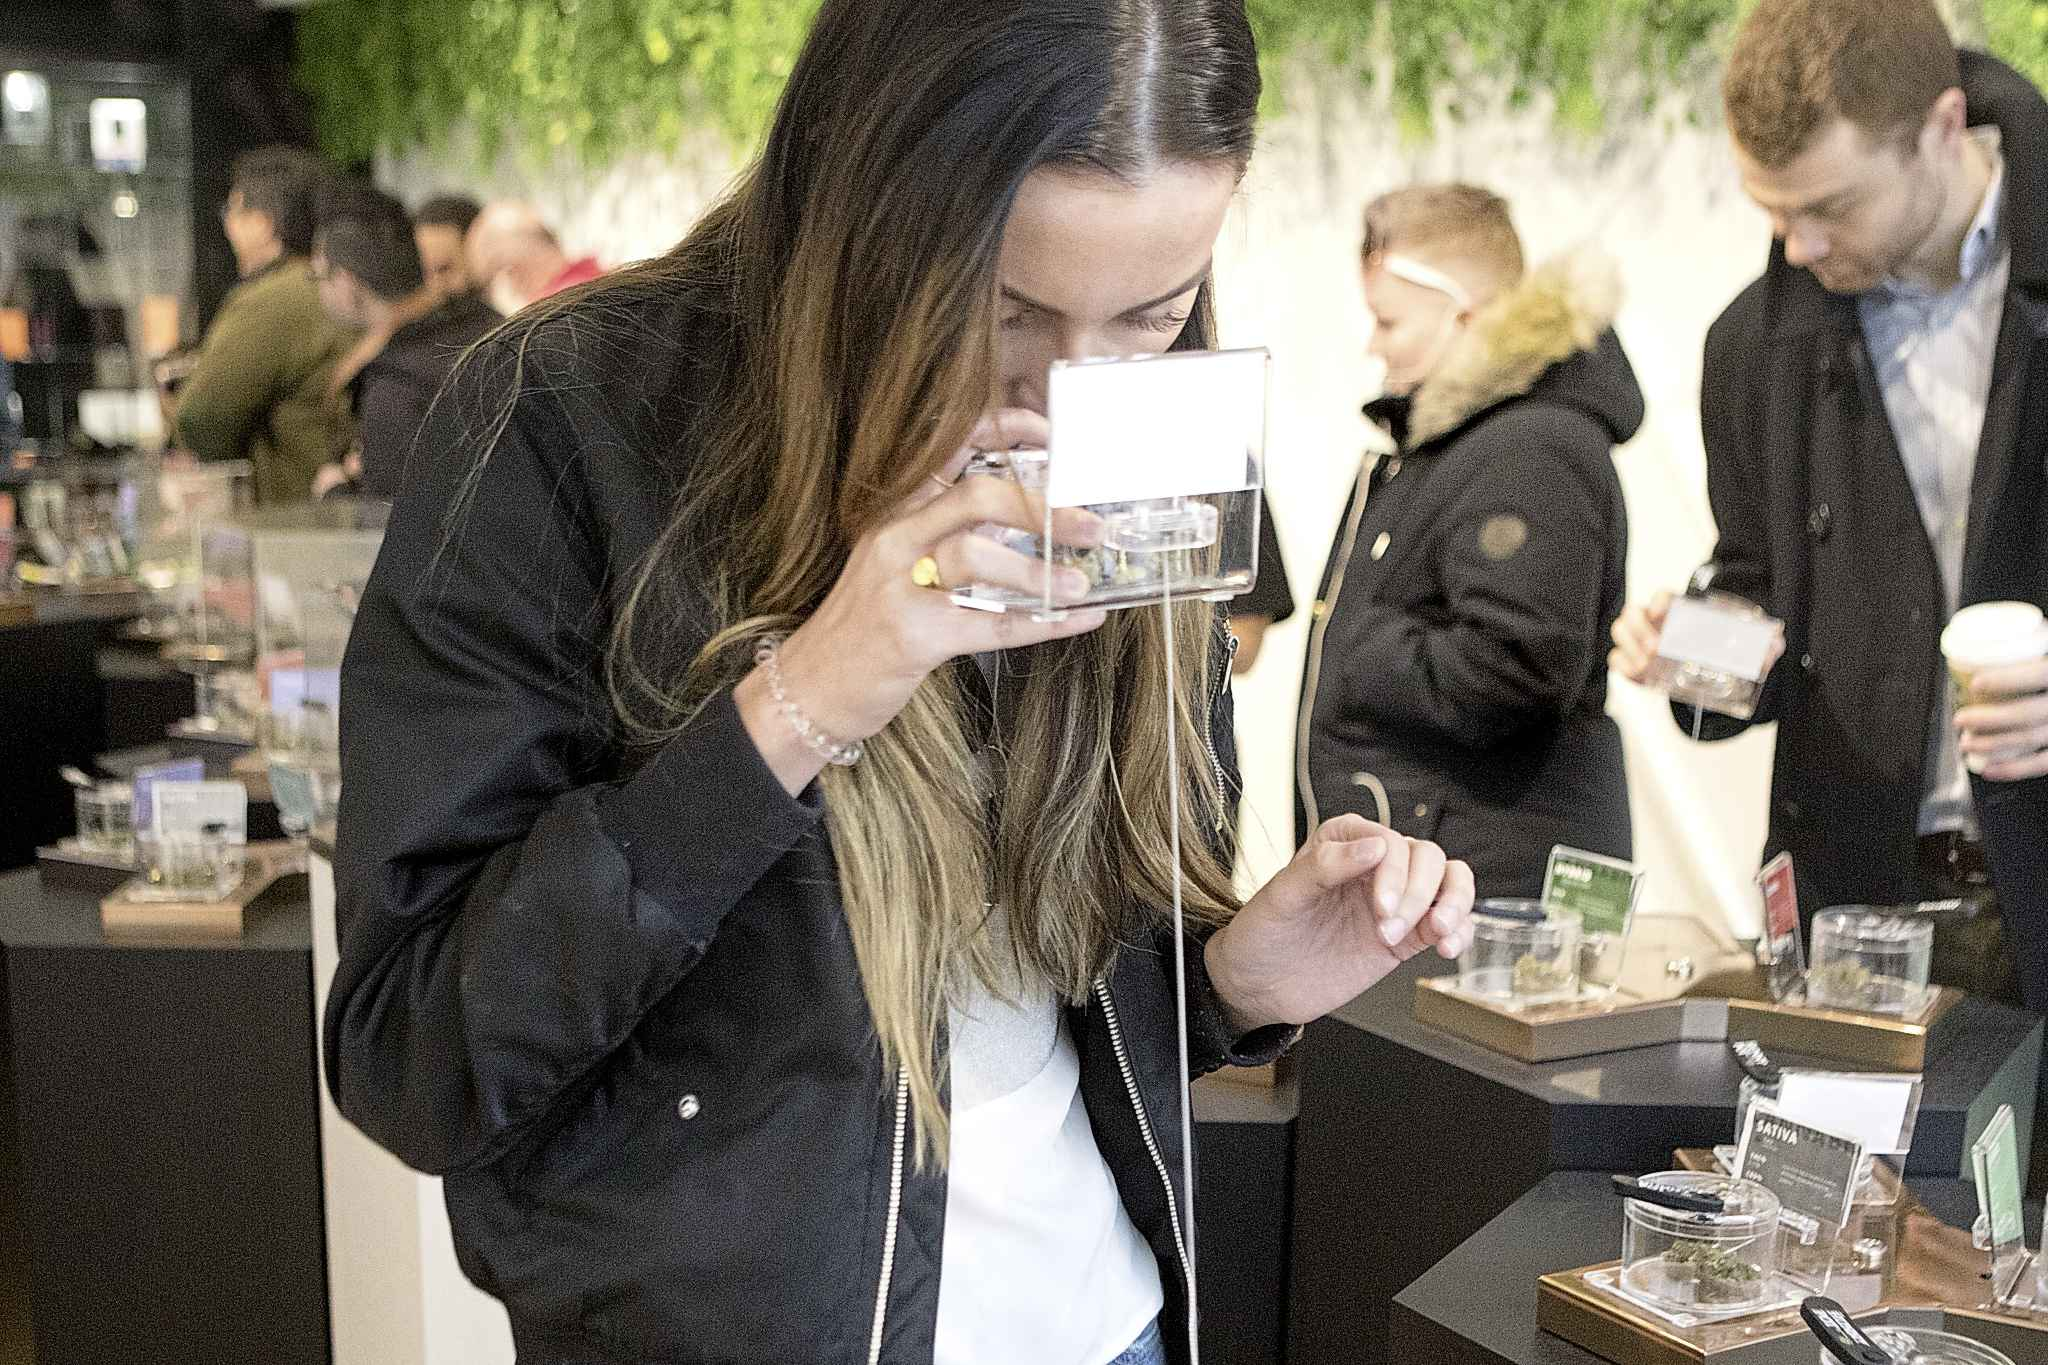 A customer smells a sample as she shops for cannabis Monday on the first morning of opening for Toronto's Hunny Pot, one of the retail stores licensed to sell cannabis in Ontario. (Chris Young / The Canadian Press)